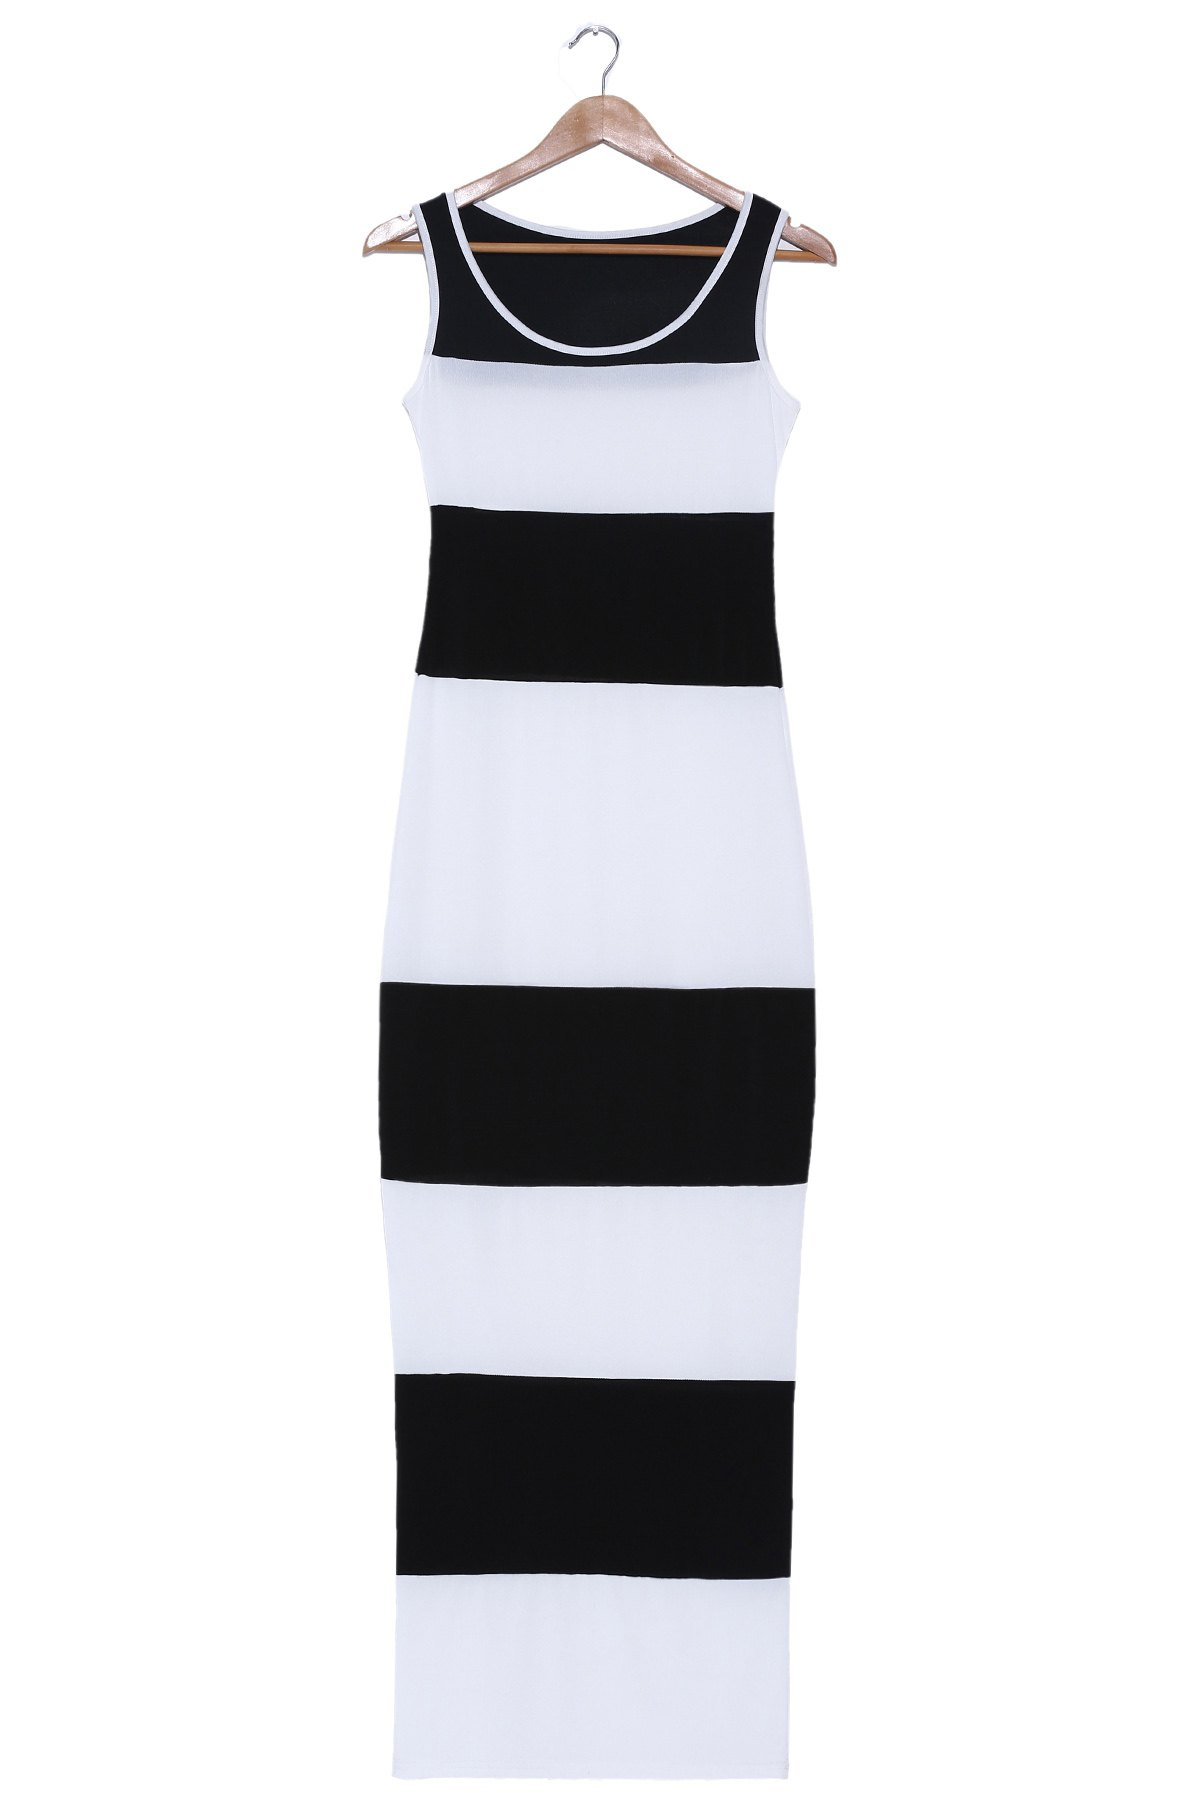 Latest Stylish Scoop Neck Sleeveless Bodycon Striped Dress For Women